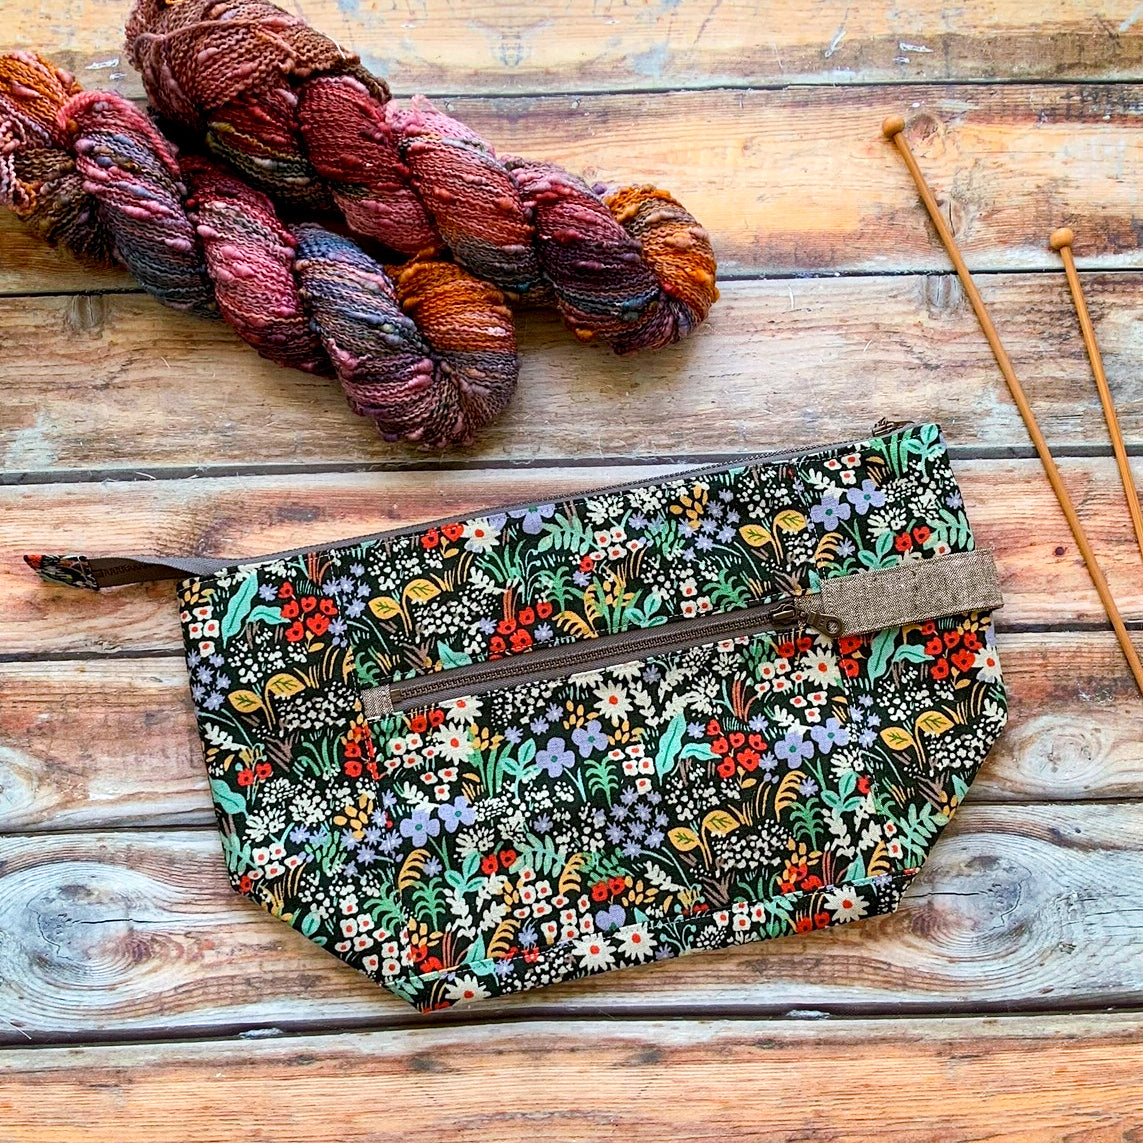 Woodsy and Wild Birch Bag- Meadow Rifle Paper Co Canvas Zippered Knitting Project Bag